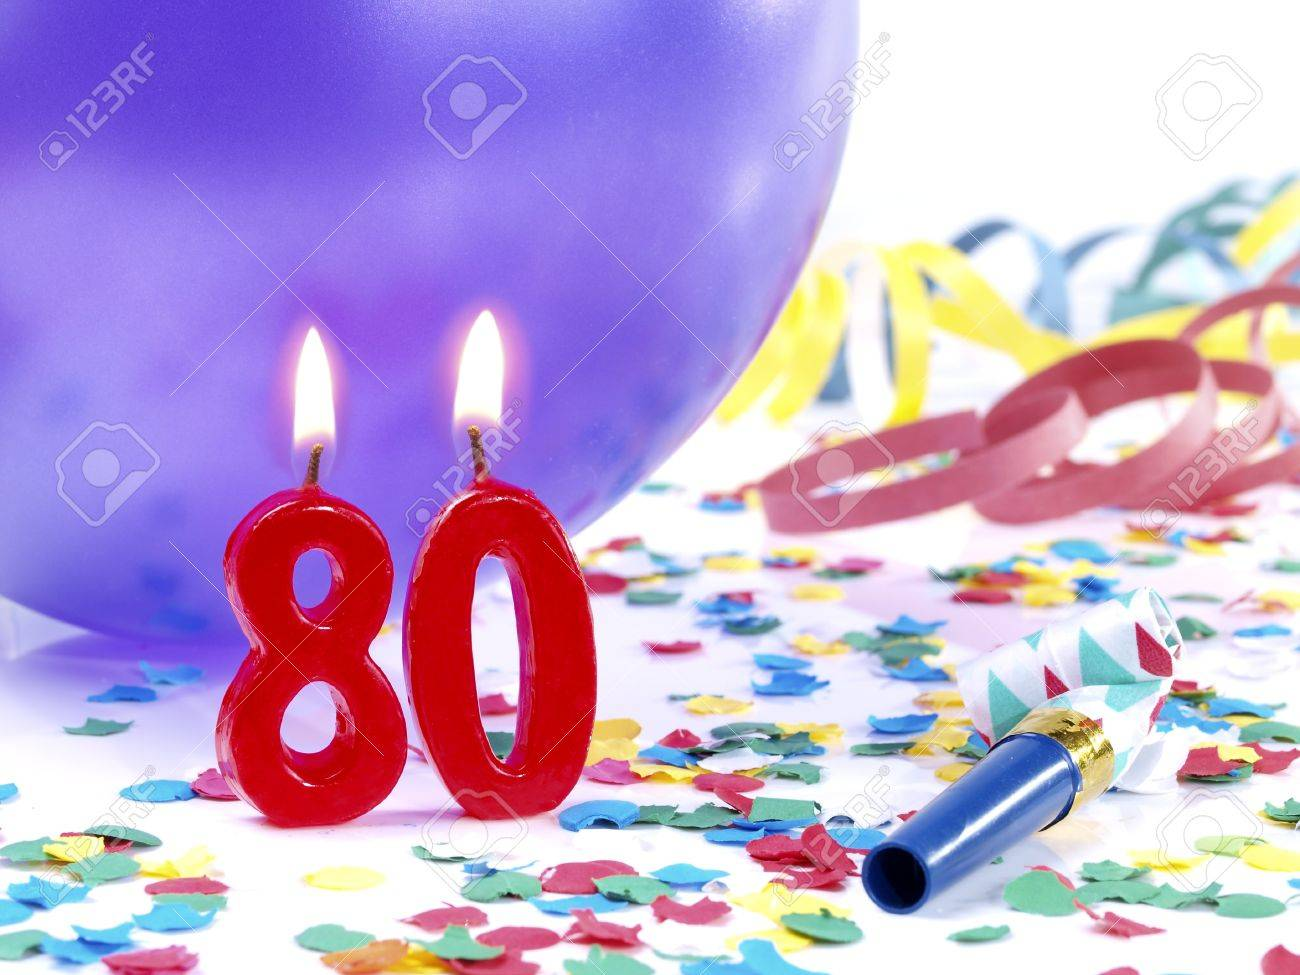 Birthday Candles Showing Nr 80 Stock Photo